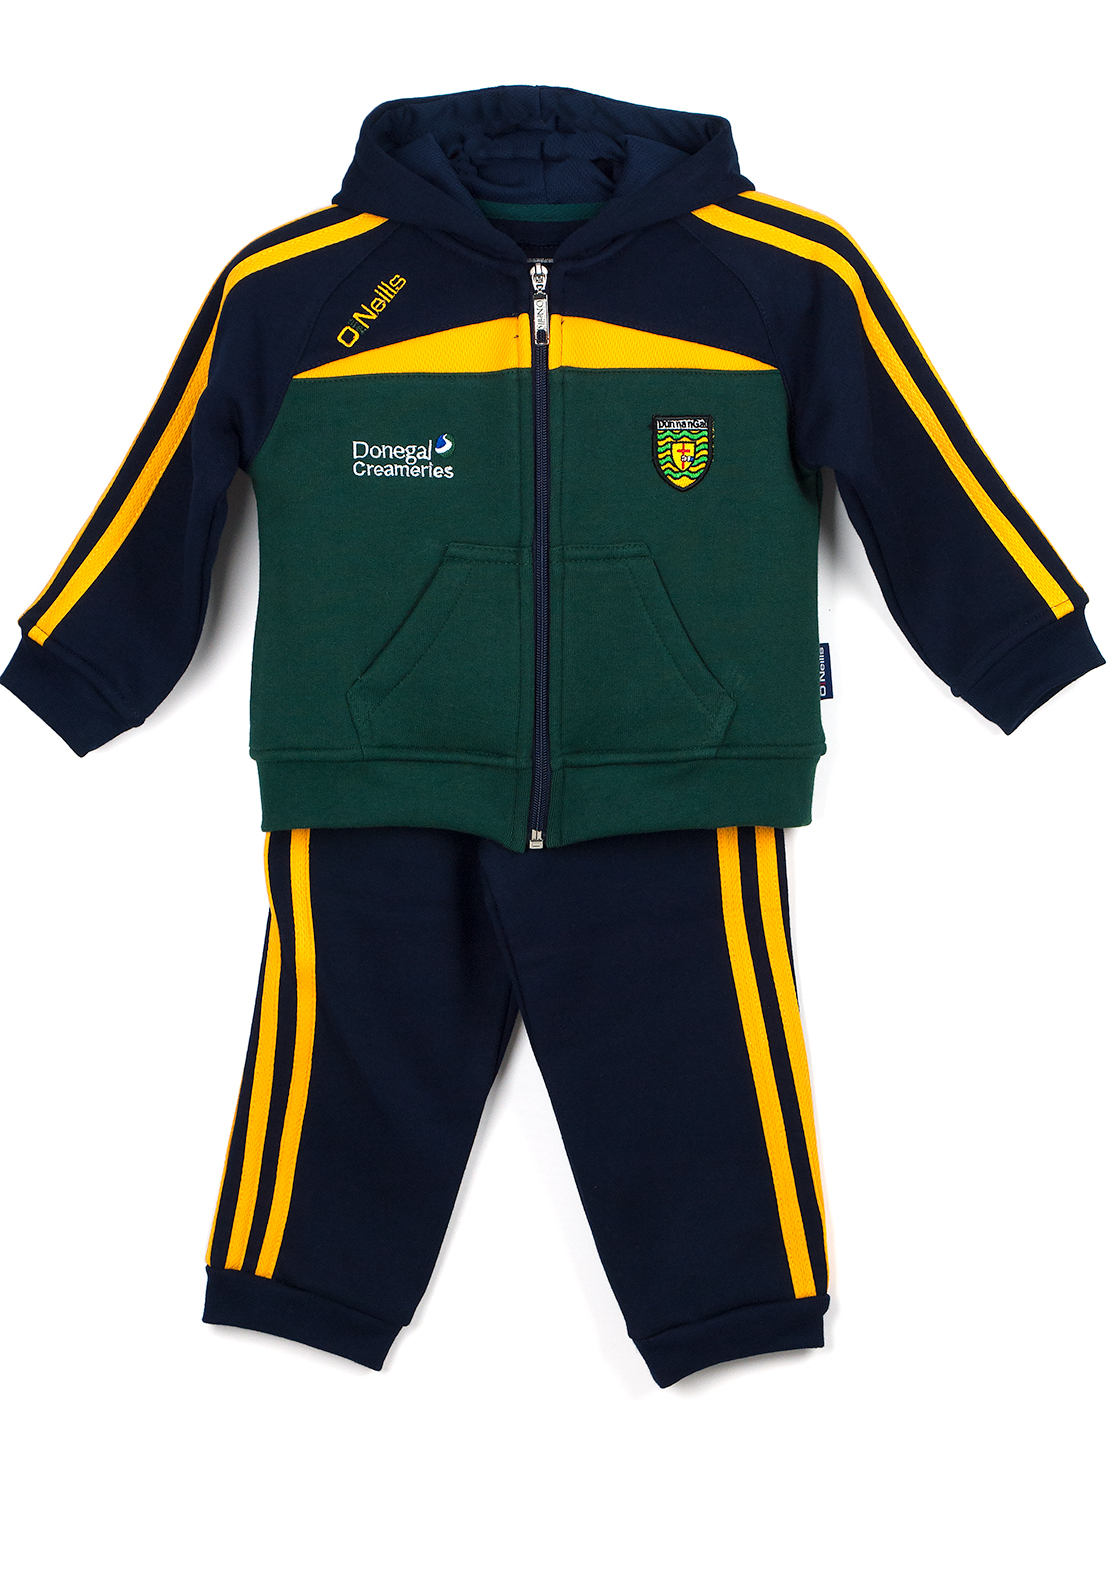 O'Neills Donegal GAA Baby Tracksuit, Green